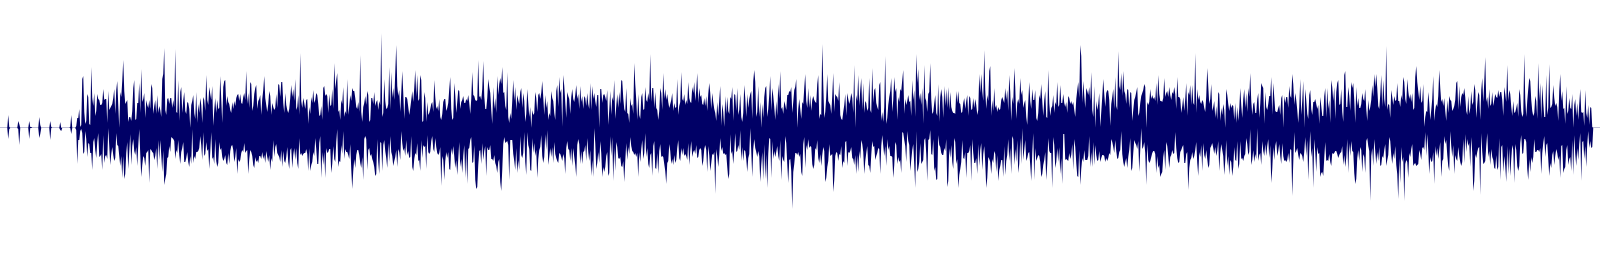 waveform of track #94965